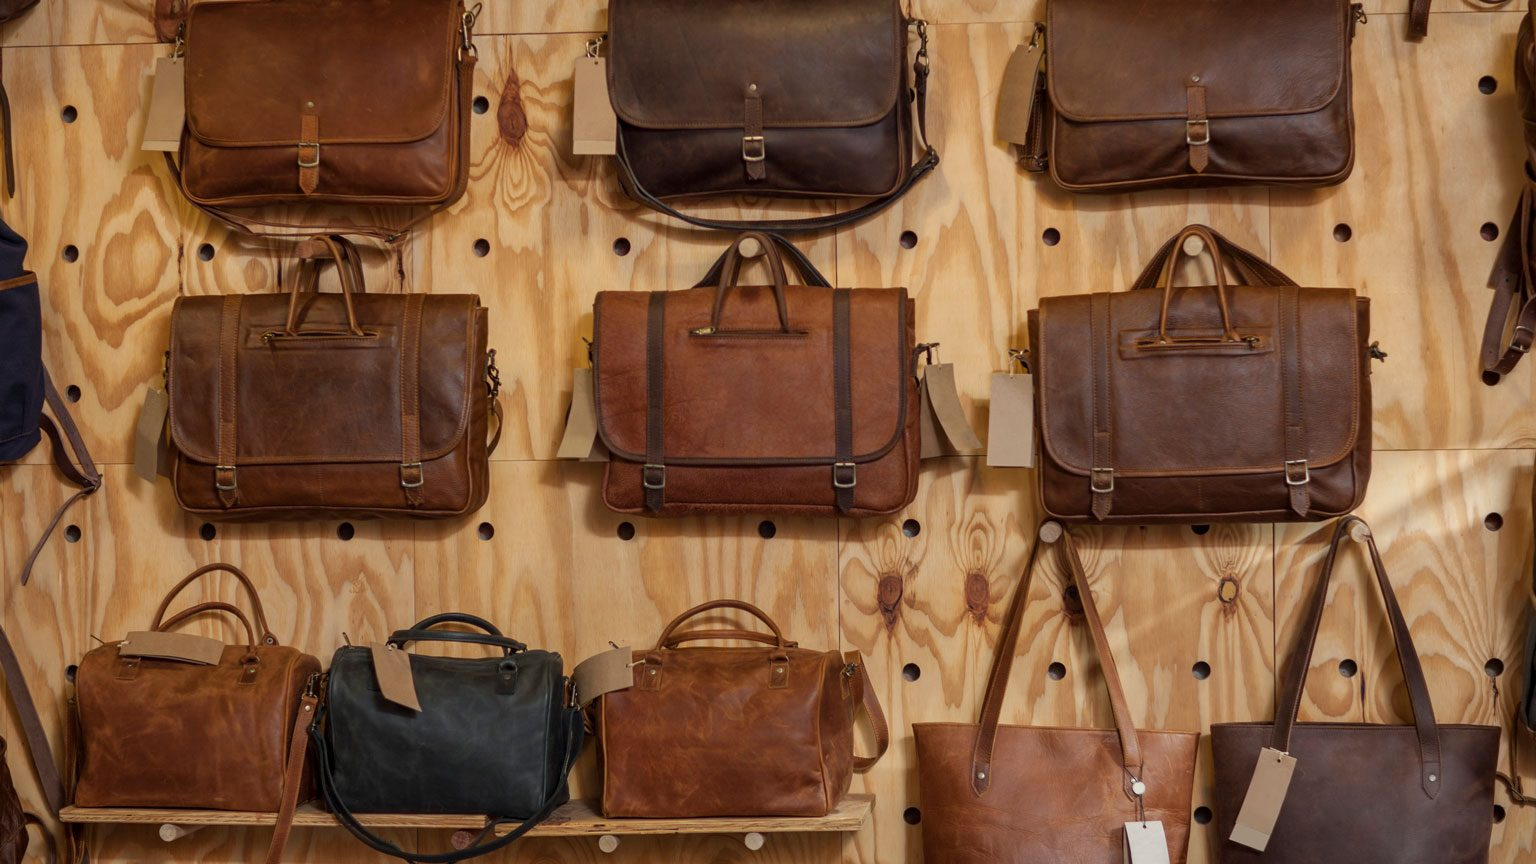 Leather bags hanging on wall